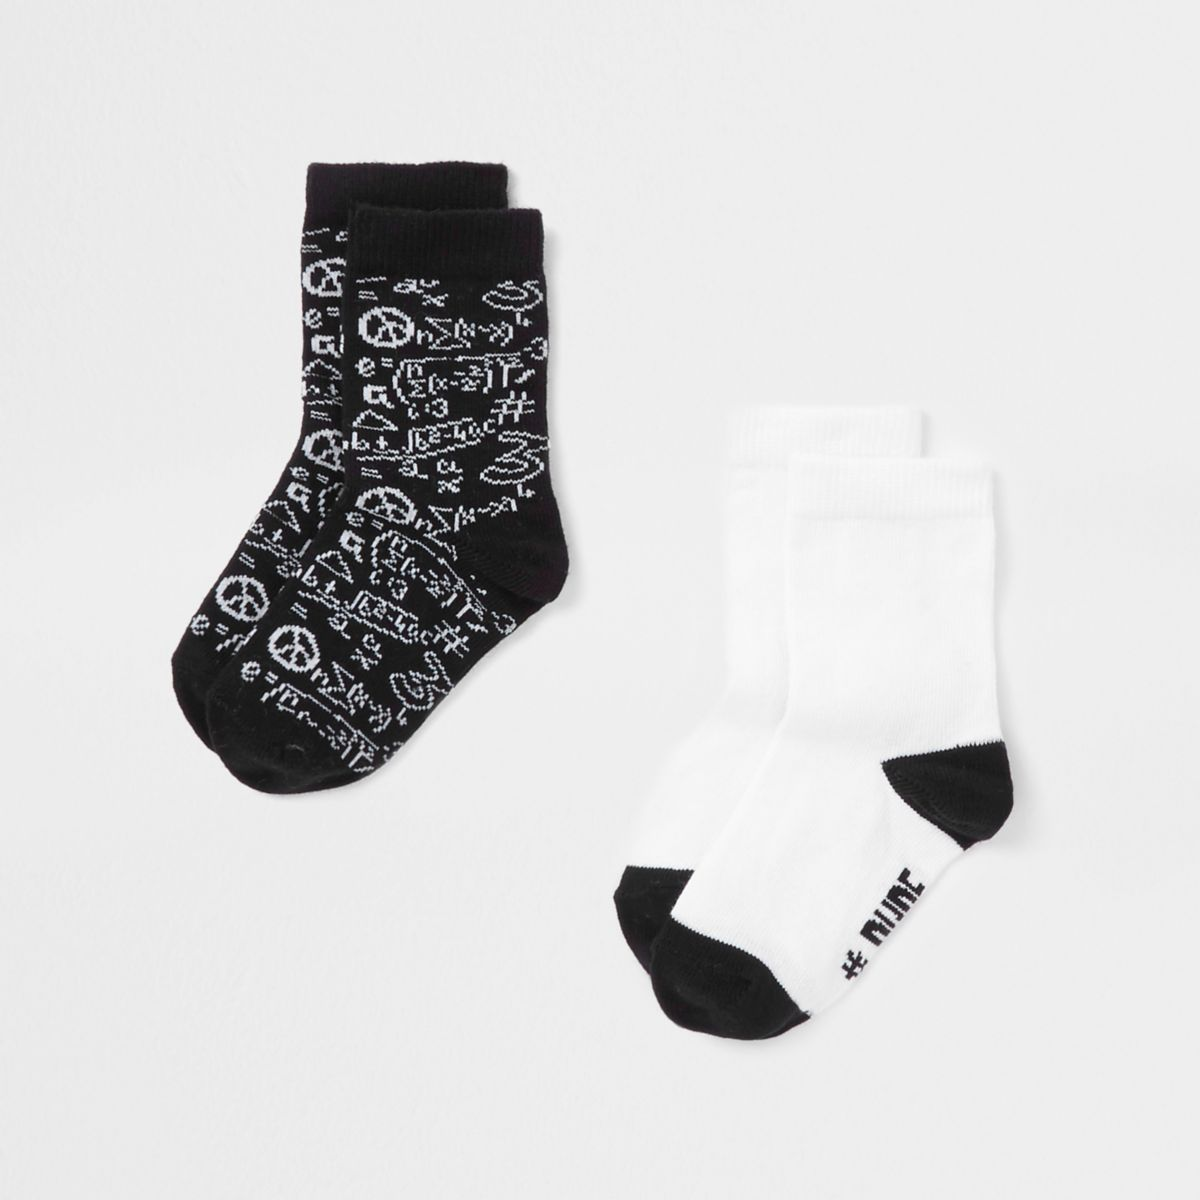 Mini boys black 'awesome dude' socks pack